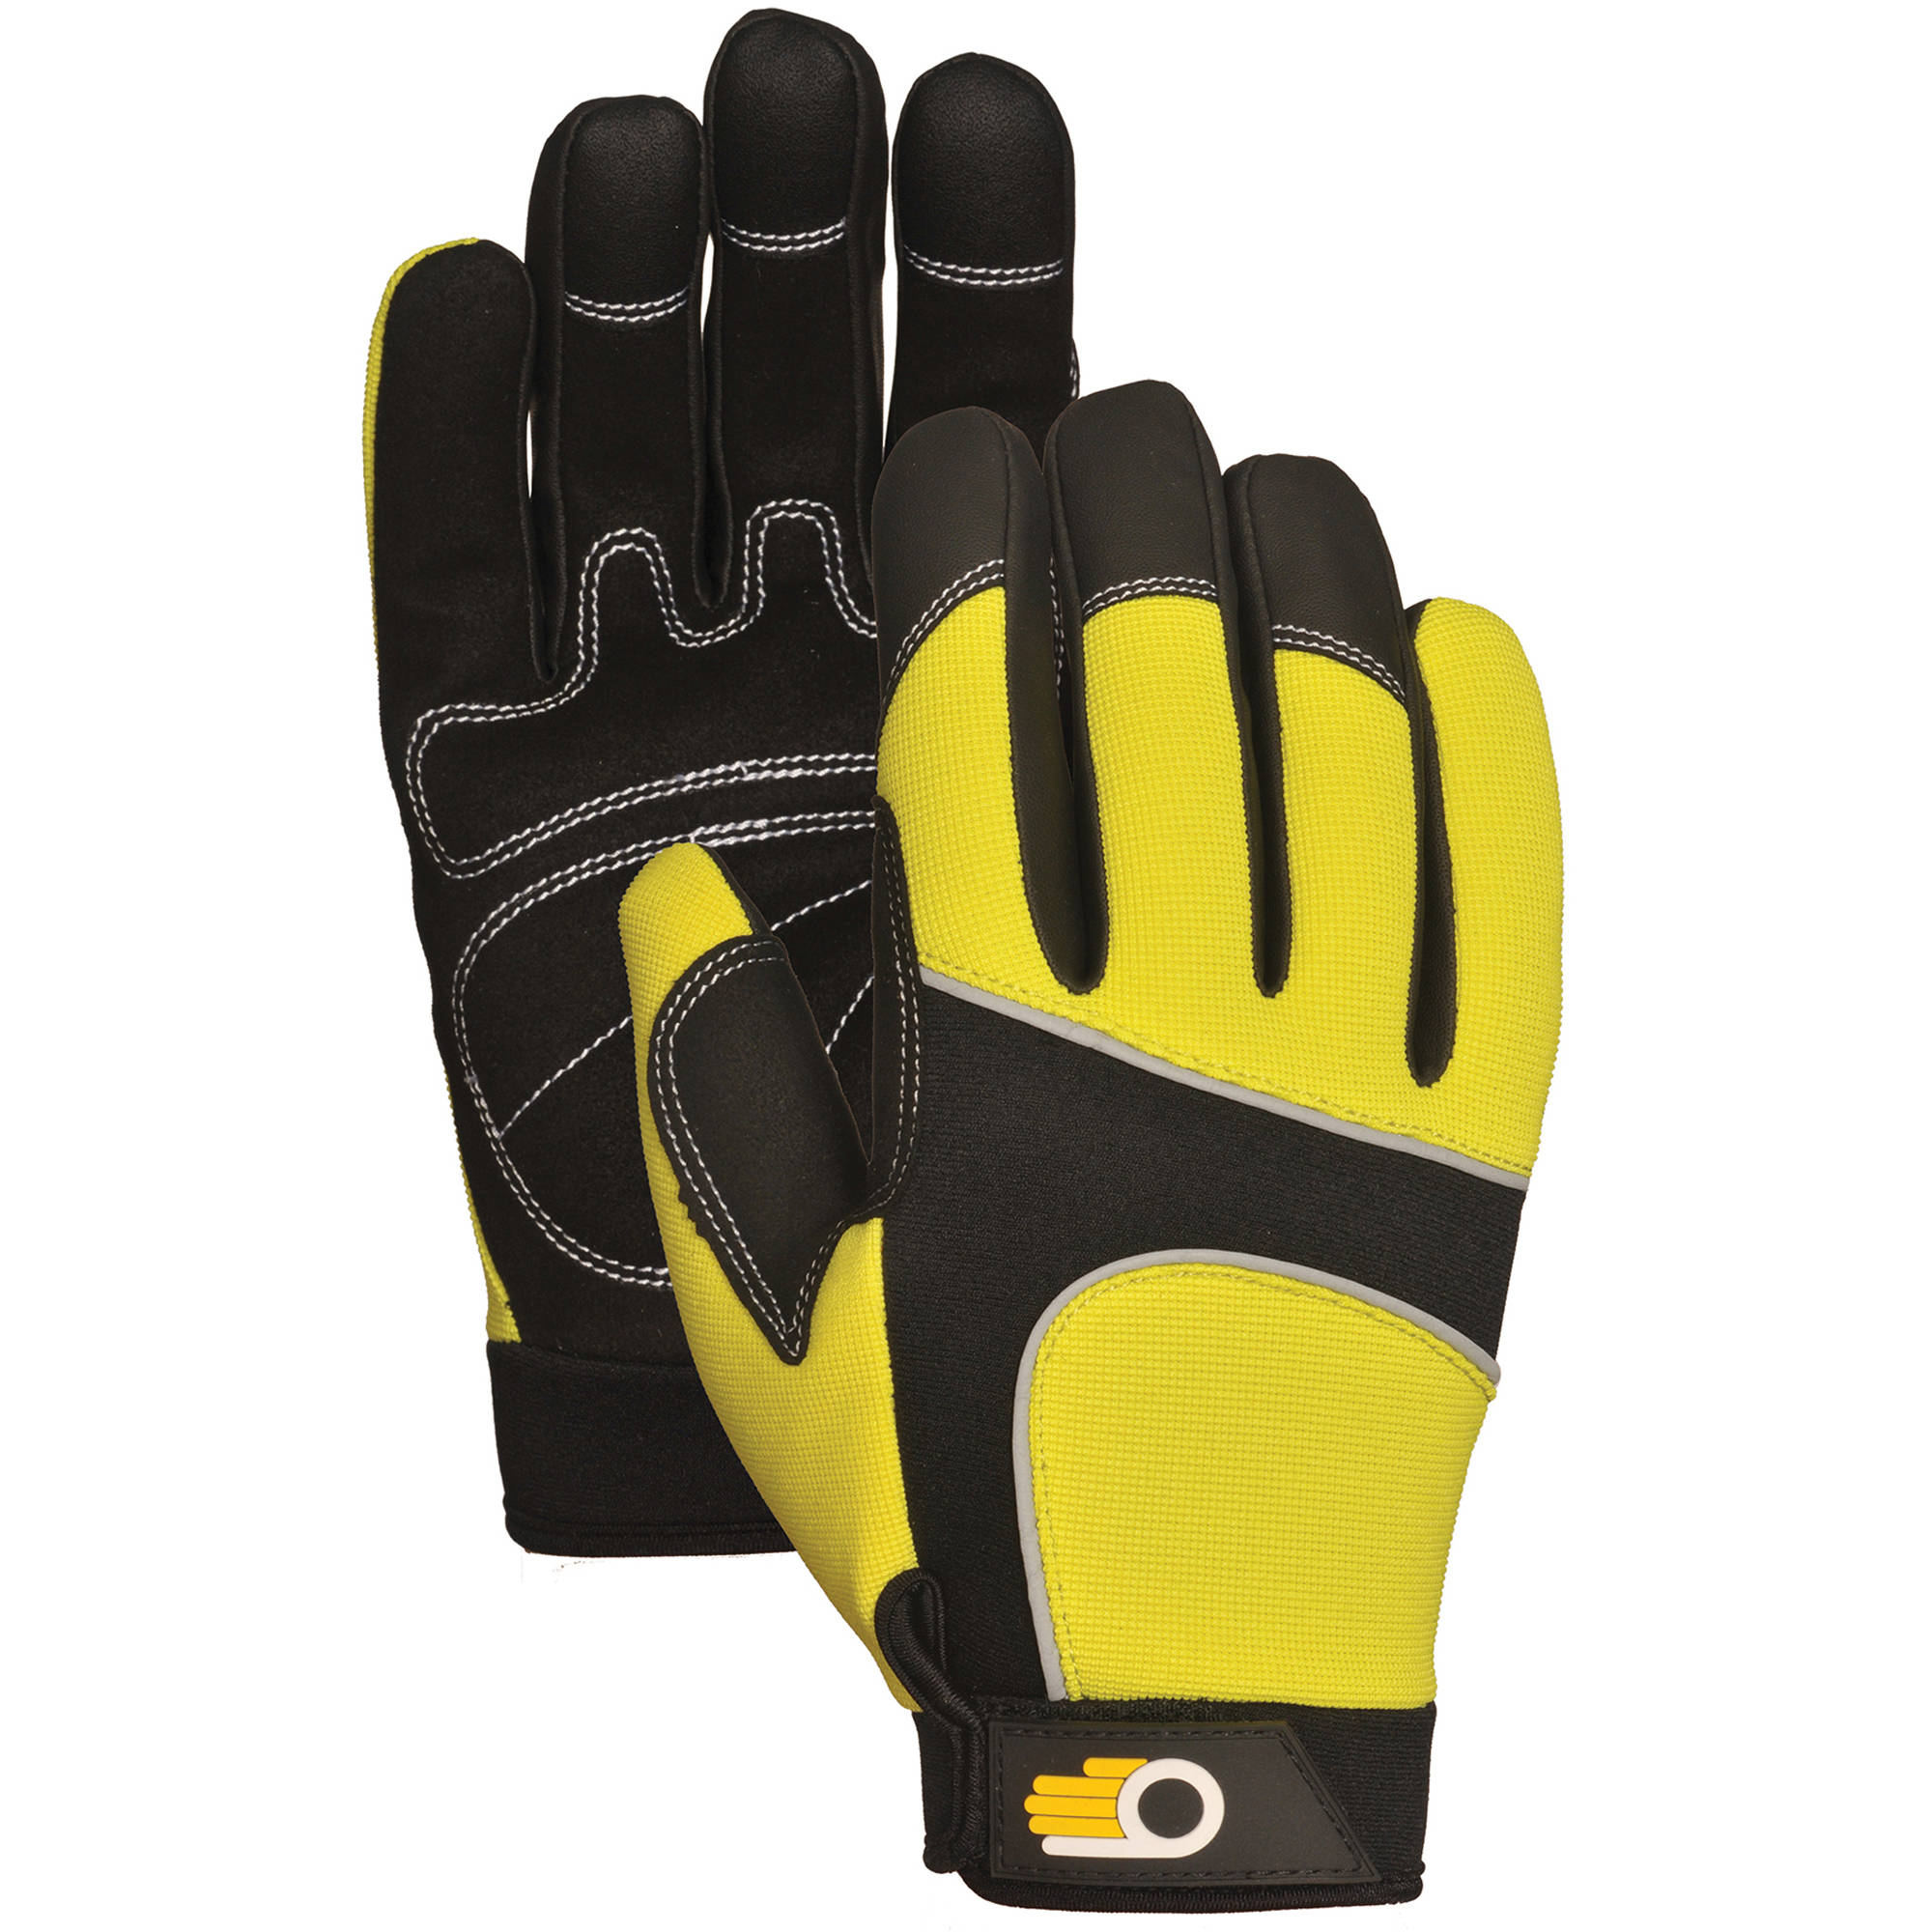 Bellingham Glove C7782HVL Large Men's Performance Hi Viz Synthetic Palm Gloves